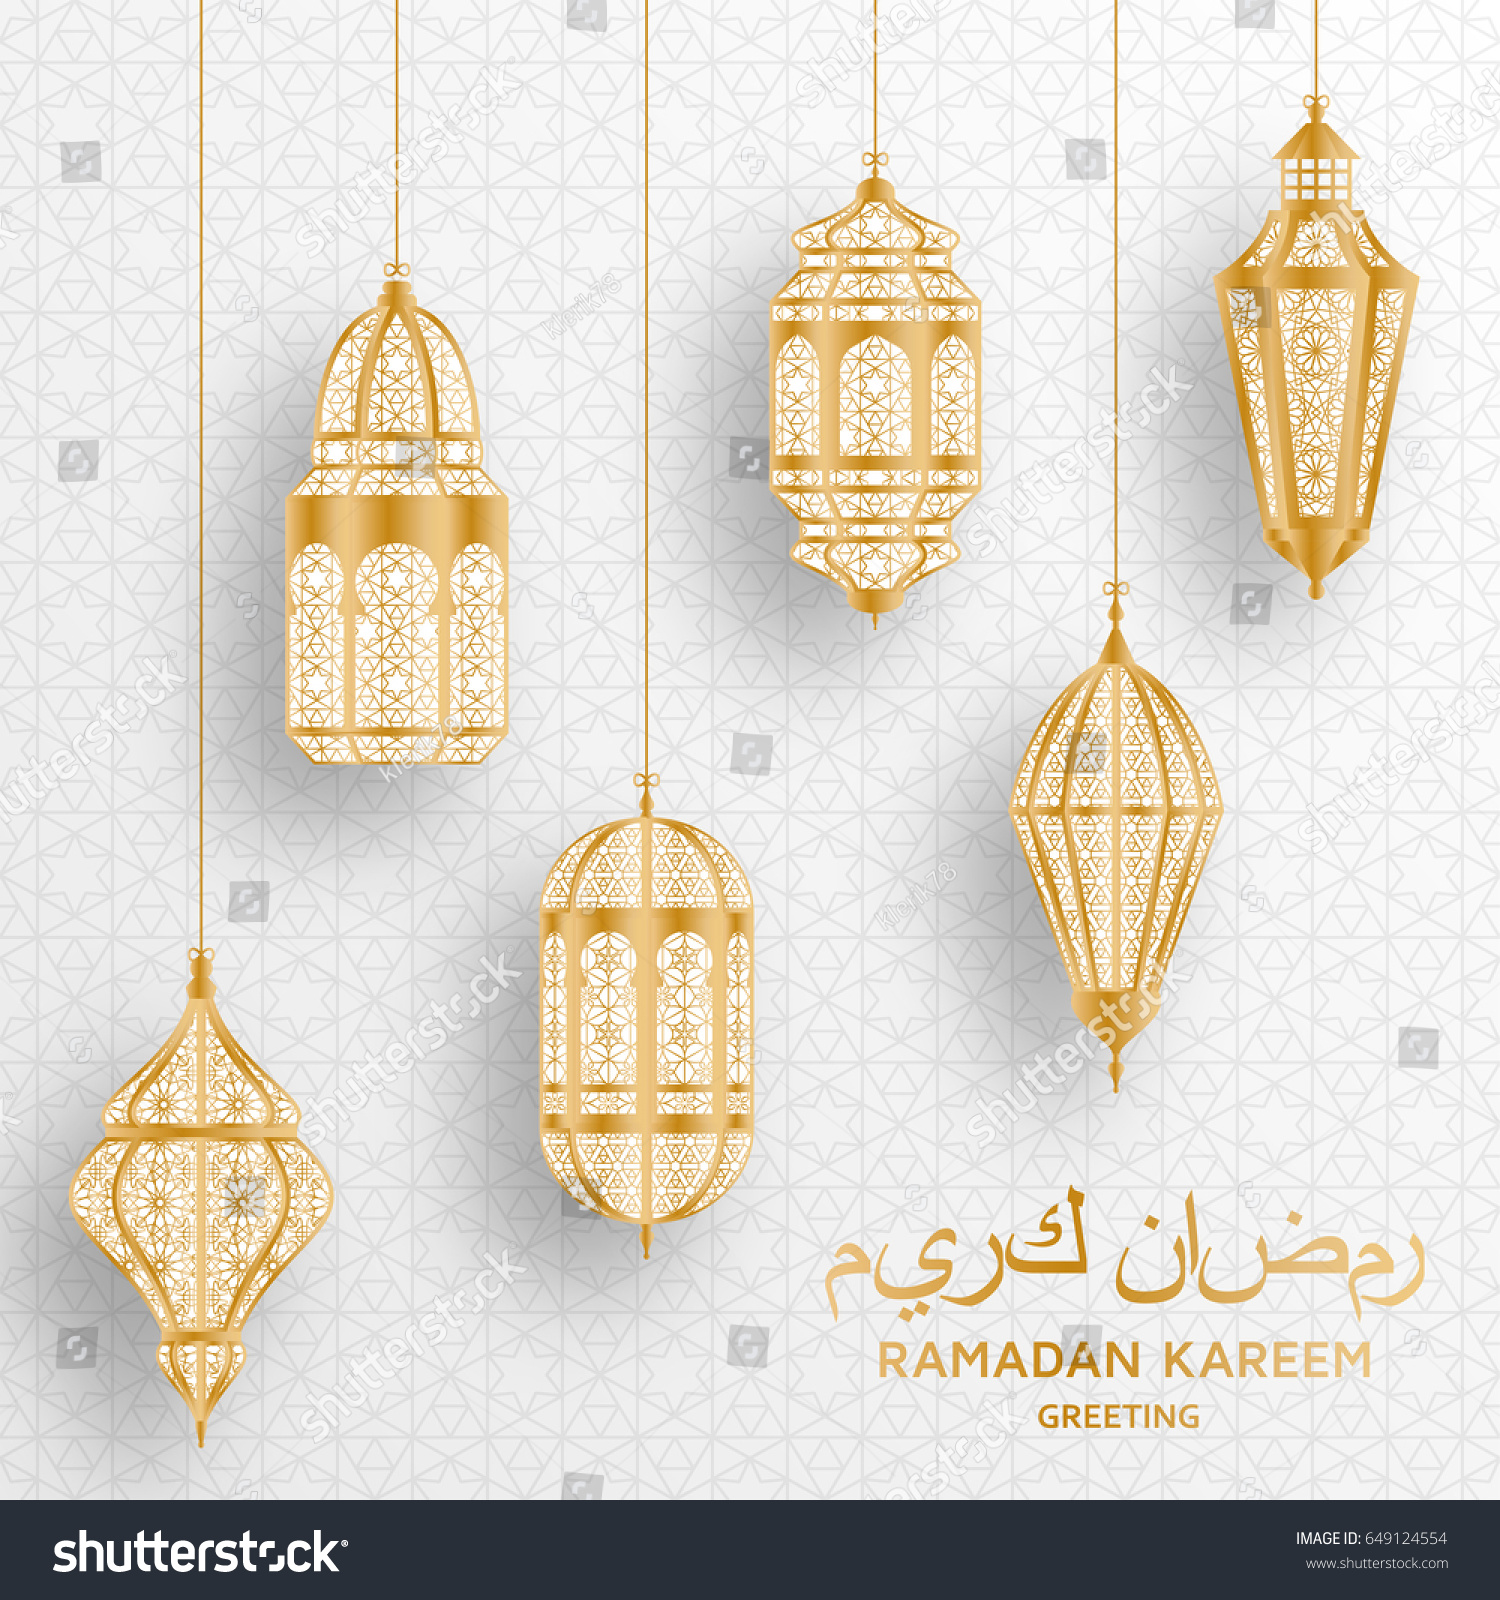 ramadan kareem background islamic arabic lantern stock vector royalty free 649124554 https www shutterstock com image vector ramadan kareem background islamic arabic lantern 649124554